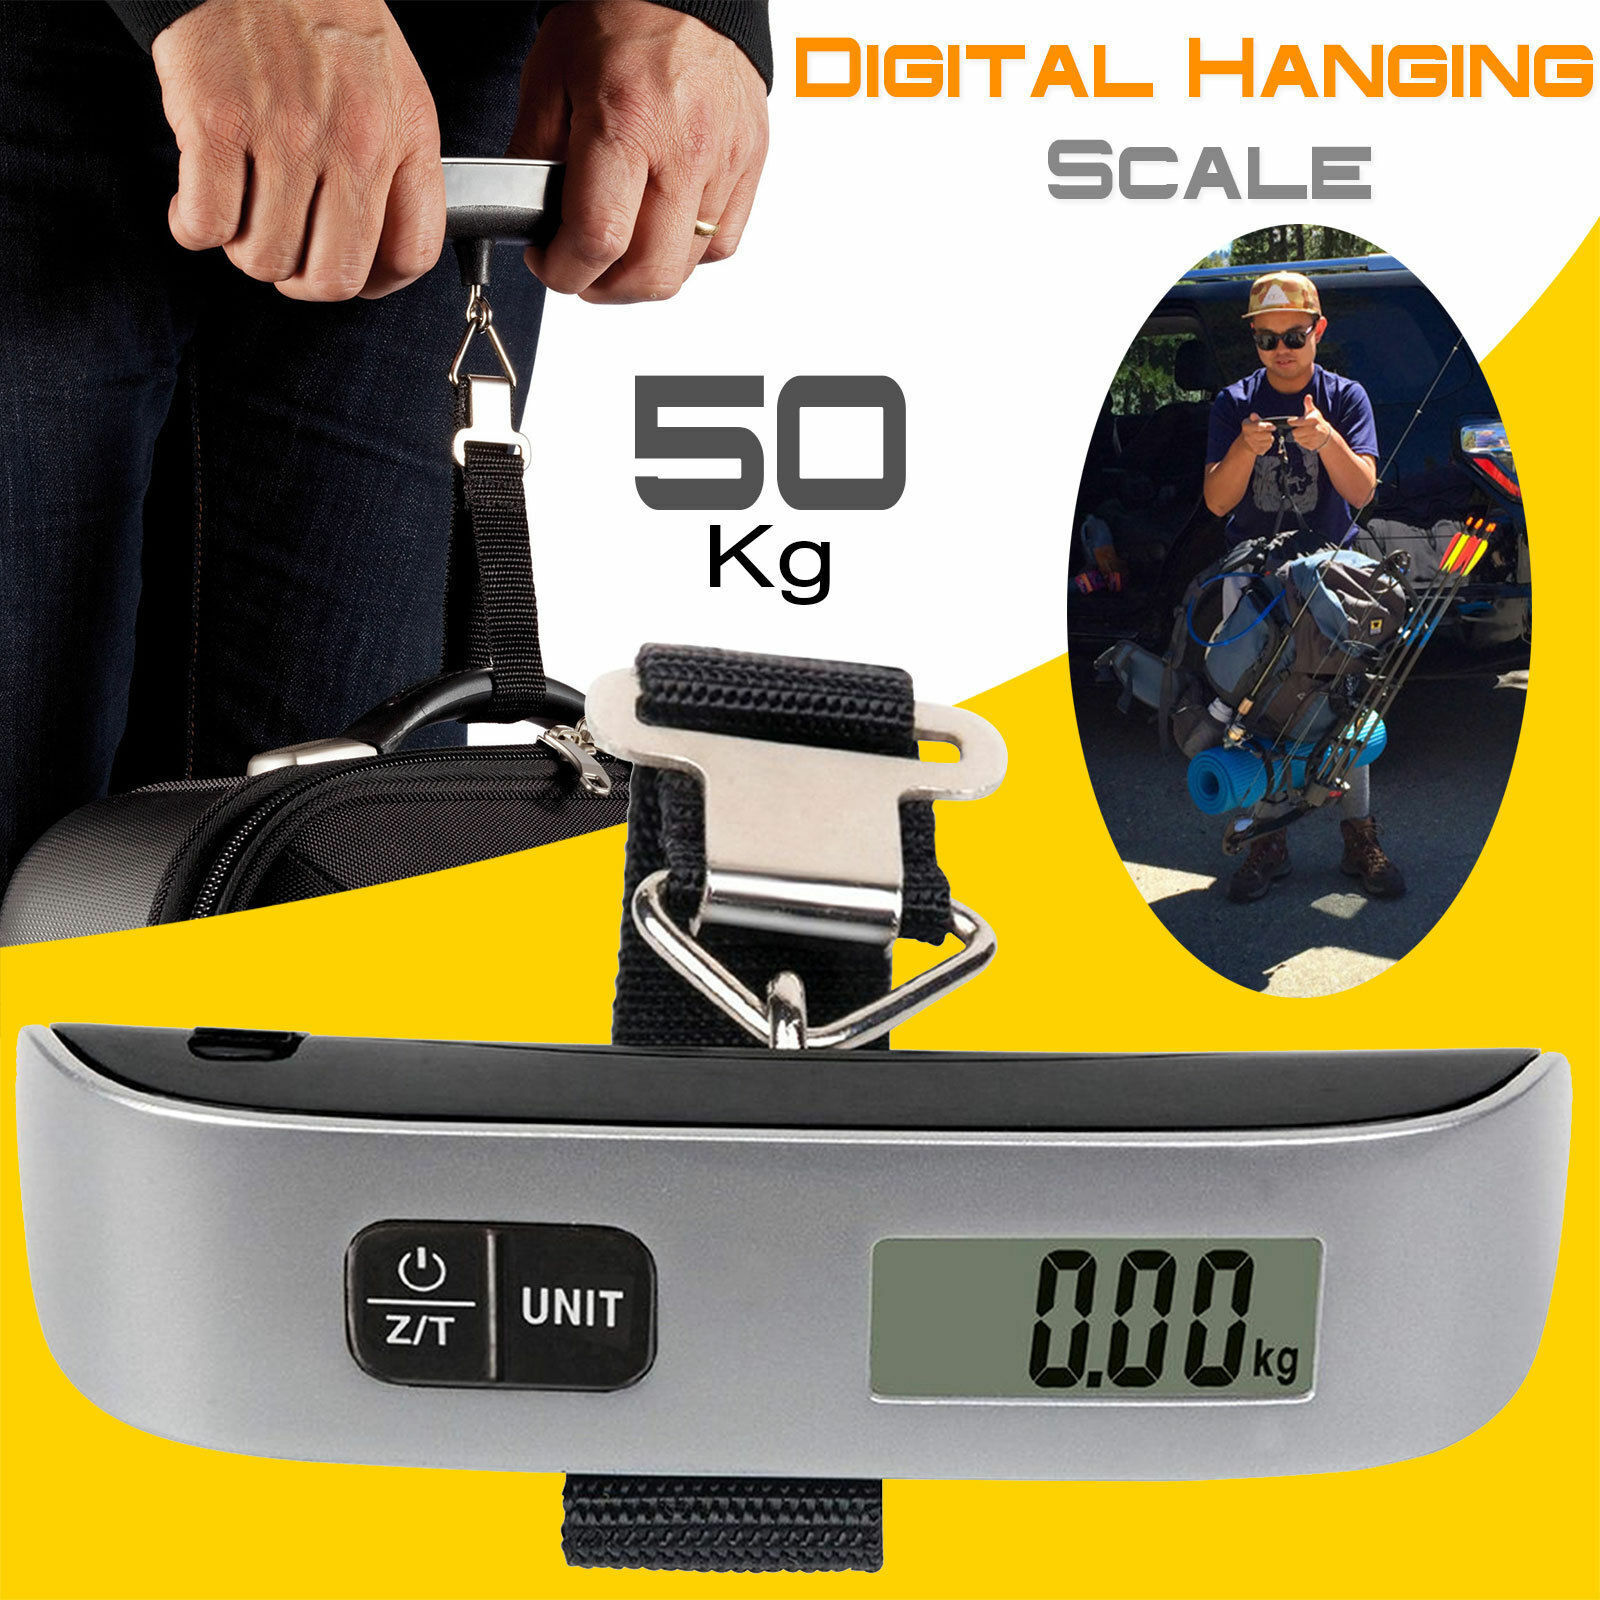 Portable Balance Digital LCD Electronic Hook Hanging Luggage Scale Weight-110lb Home & Garden